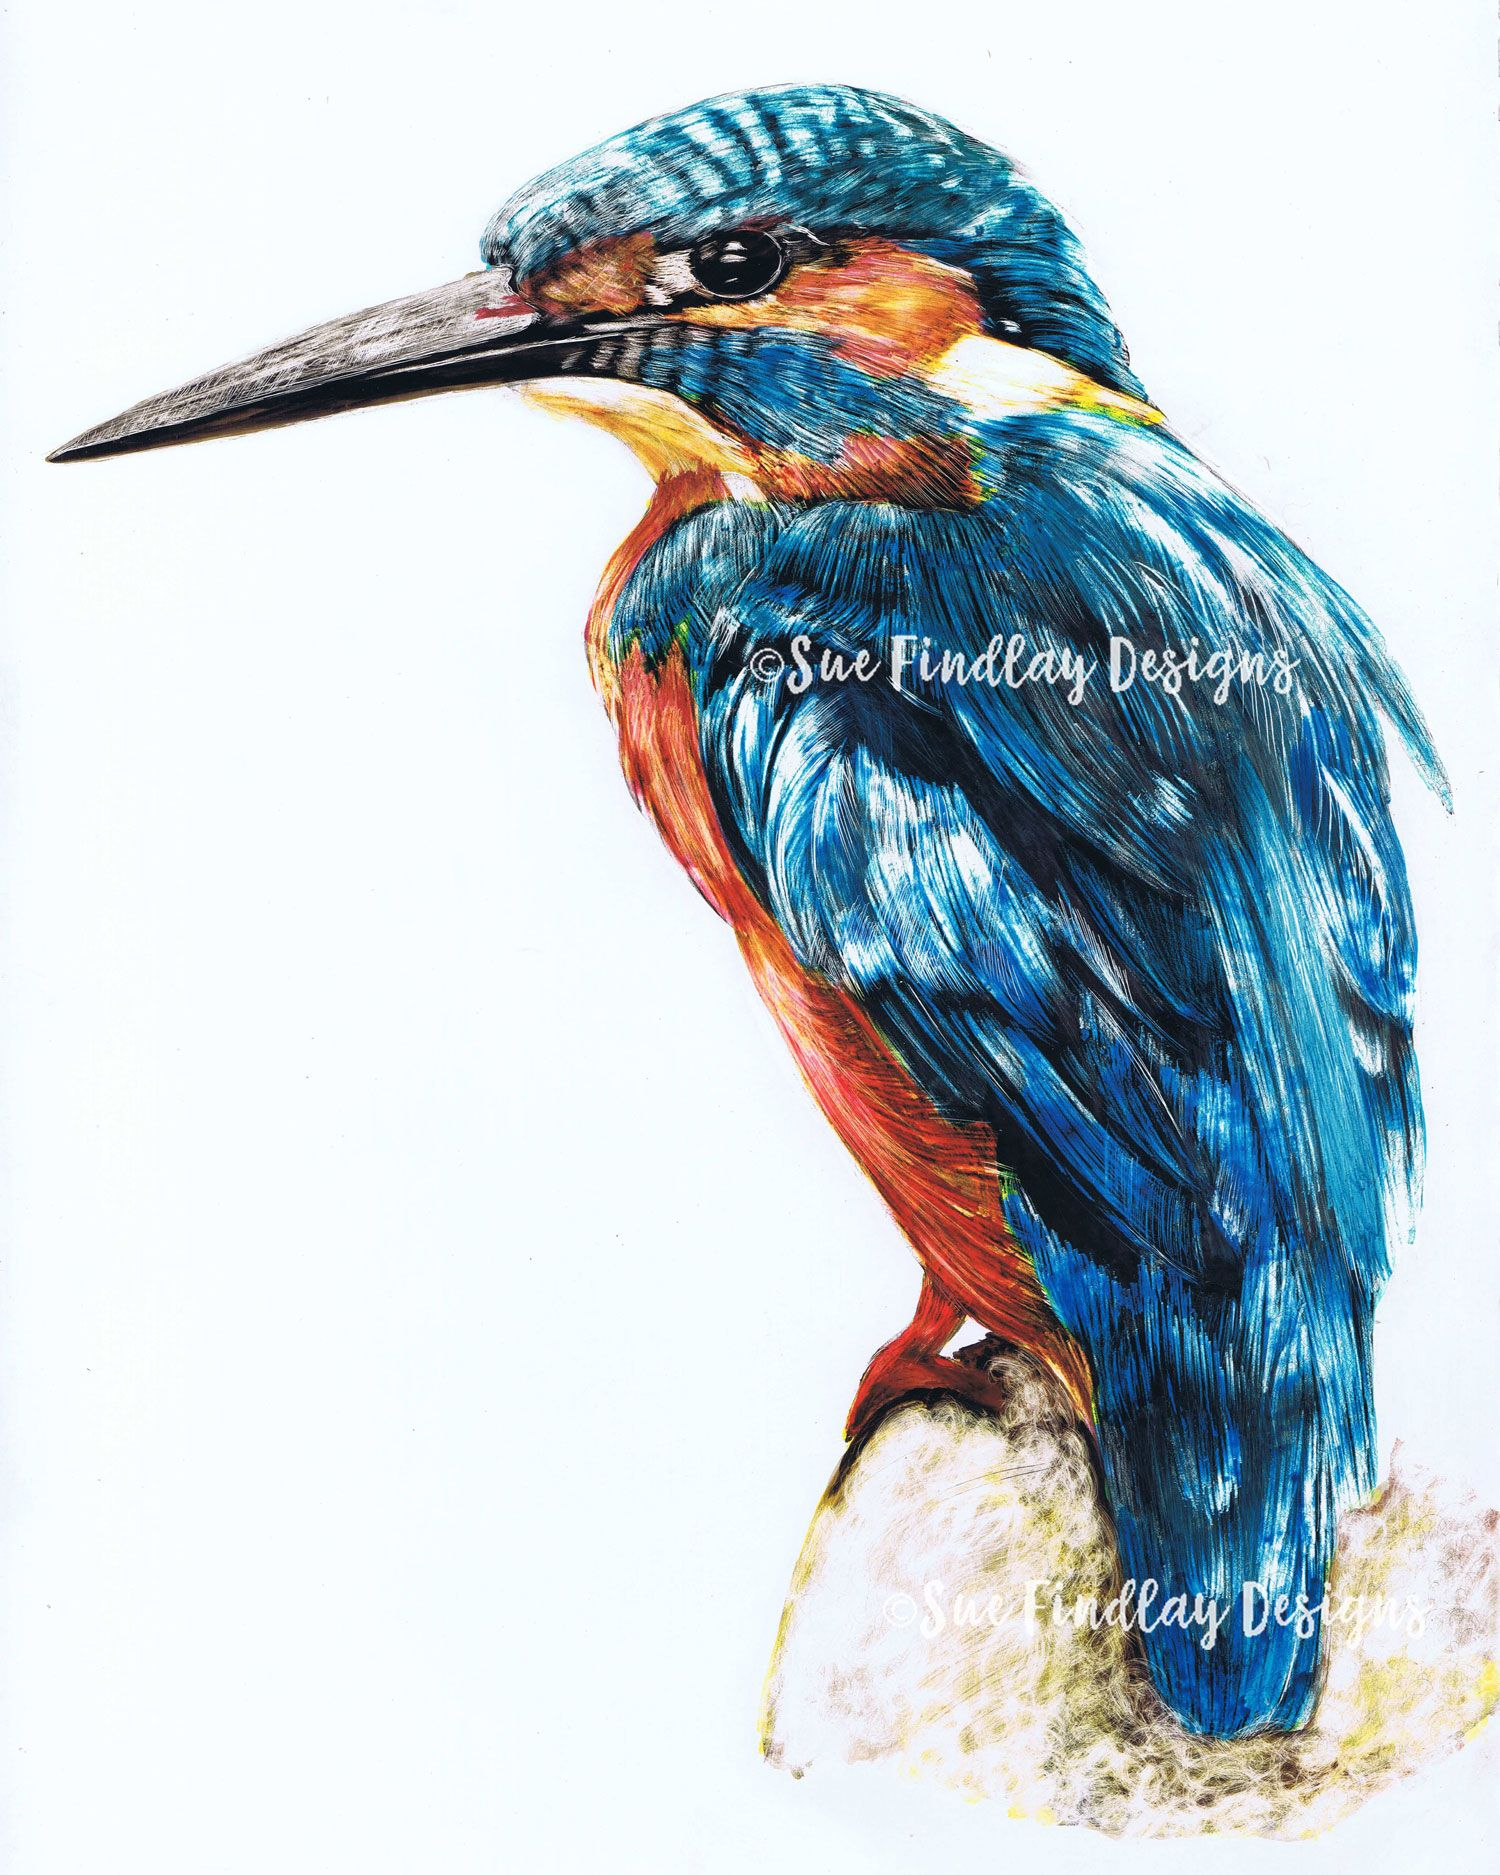 Kingfisher Original Watercolour And Ink On Clay Board Con